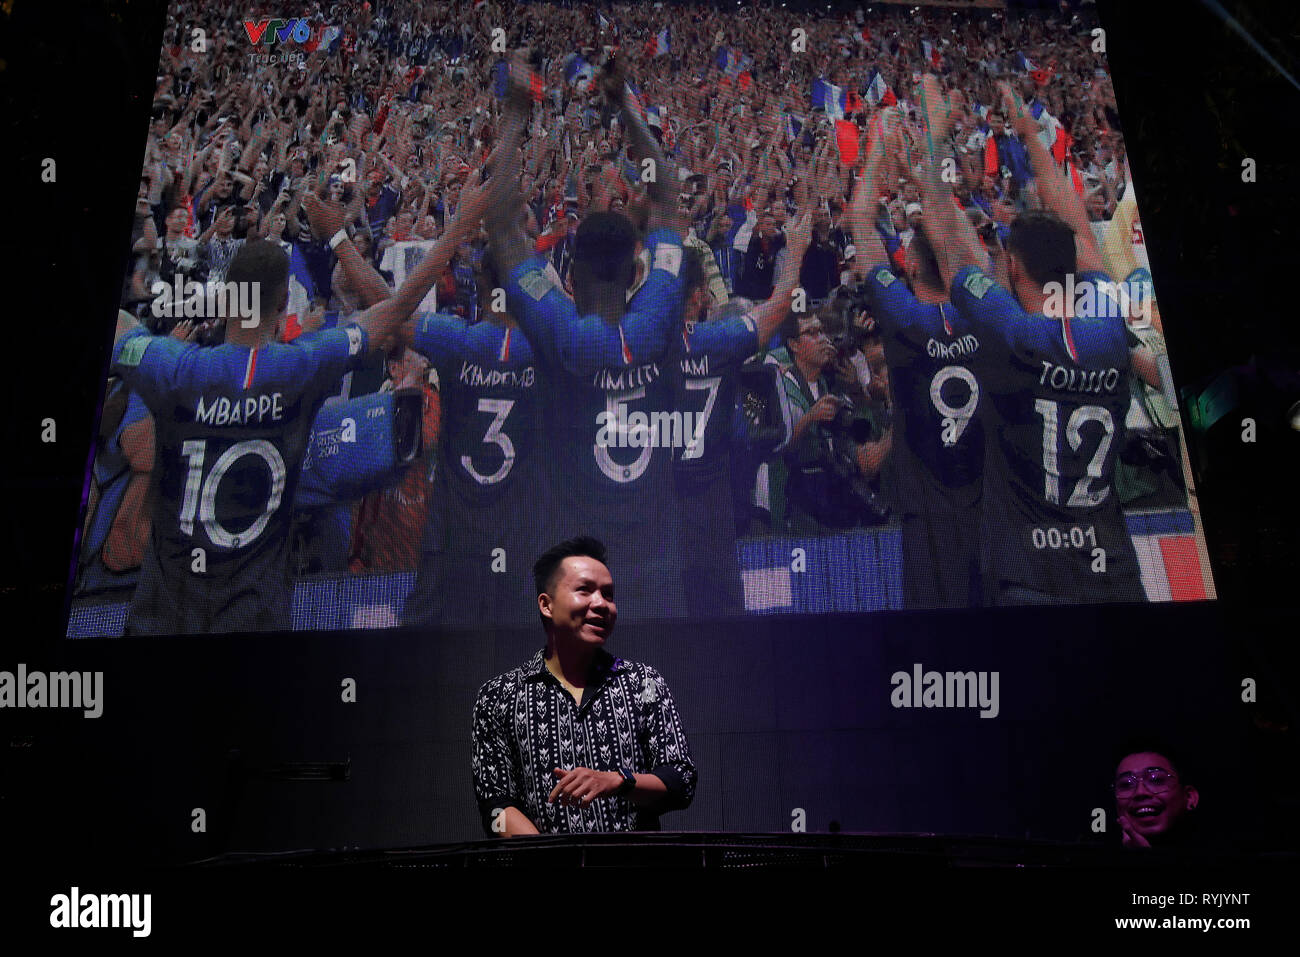 DJ on stage during FIFA  France vs Croatia 2018. France win World Football Cup 2018 final Ho Chi Minh City. Vietnam. - Stock Image